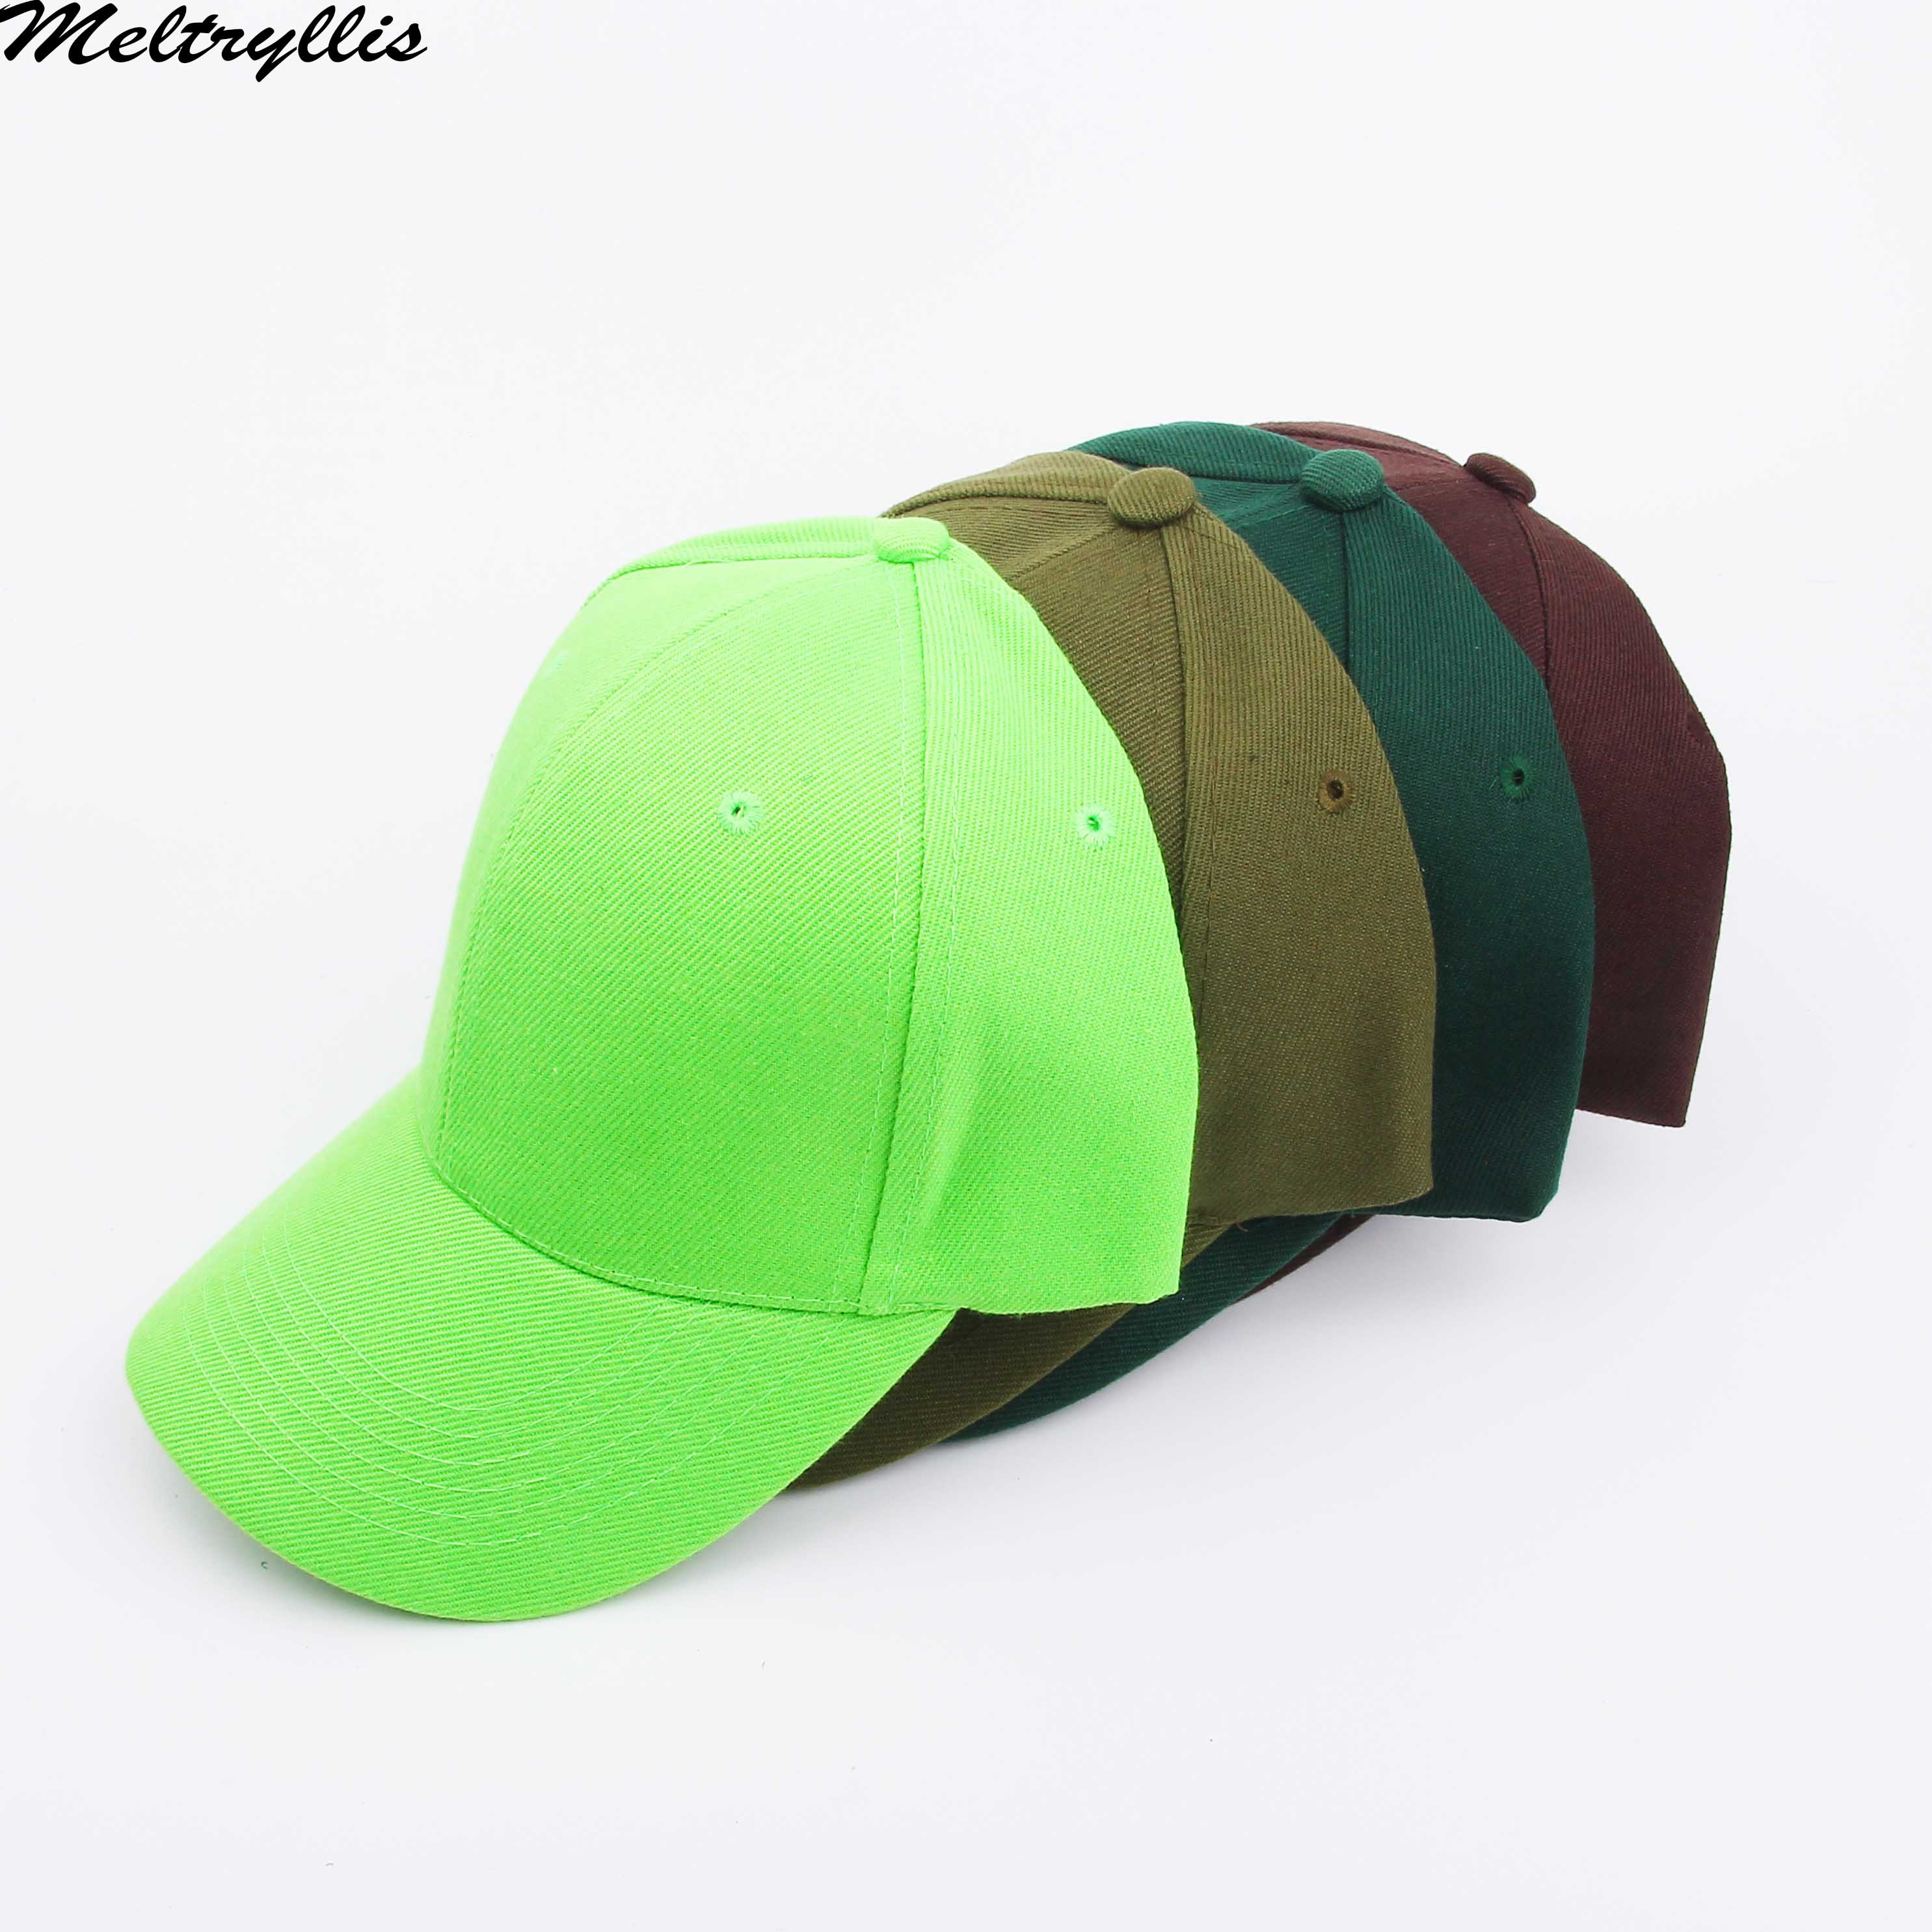 [Meltryllis]4 Colors Unisex Fahsion Baseball Cap Men Women Snapback Hat Hip-Hop Adjustable Army Hats Outdoor Climbing Caps